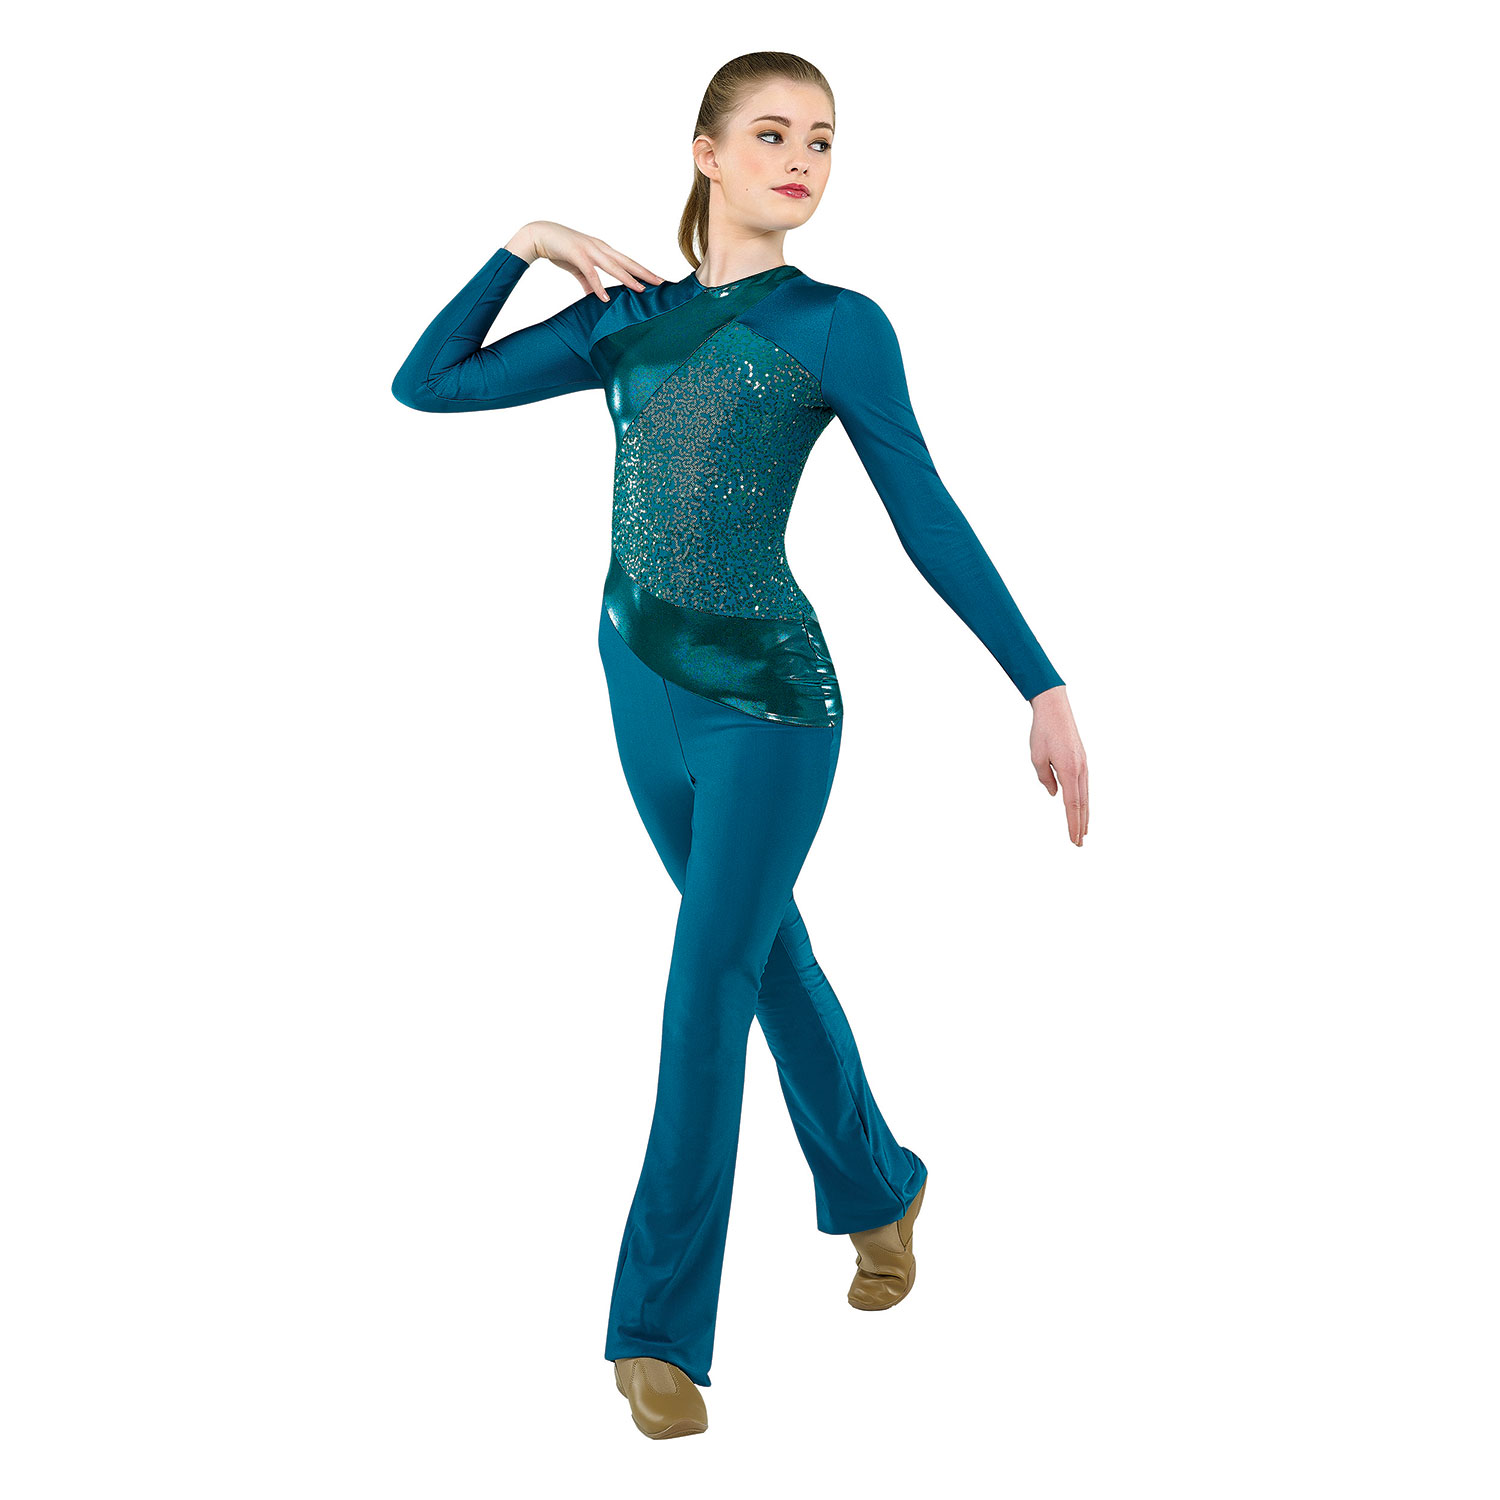 Guard Uniforms: Style 5005